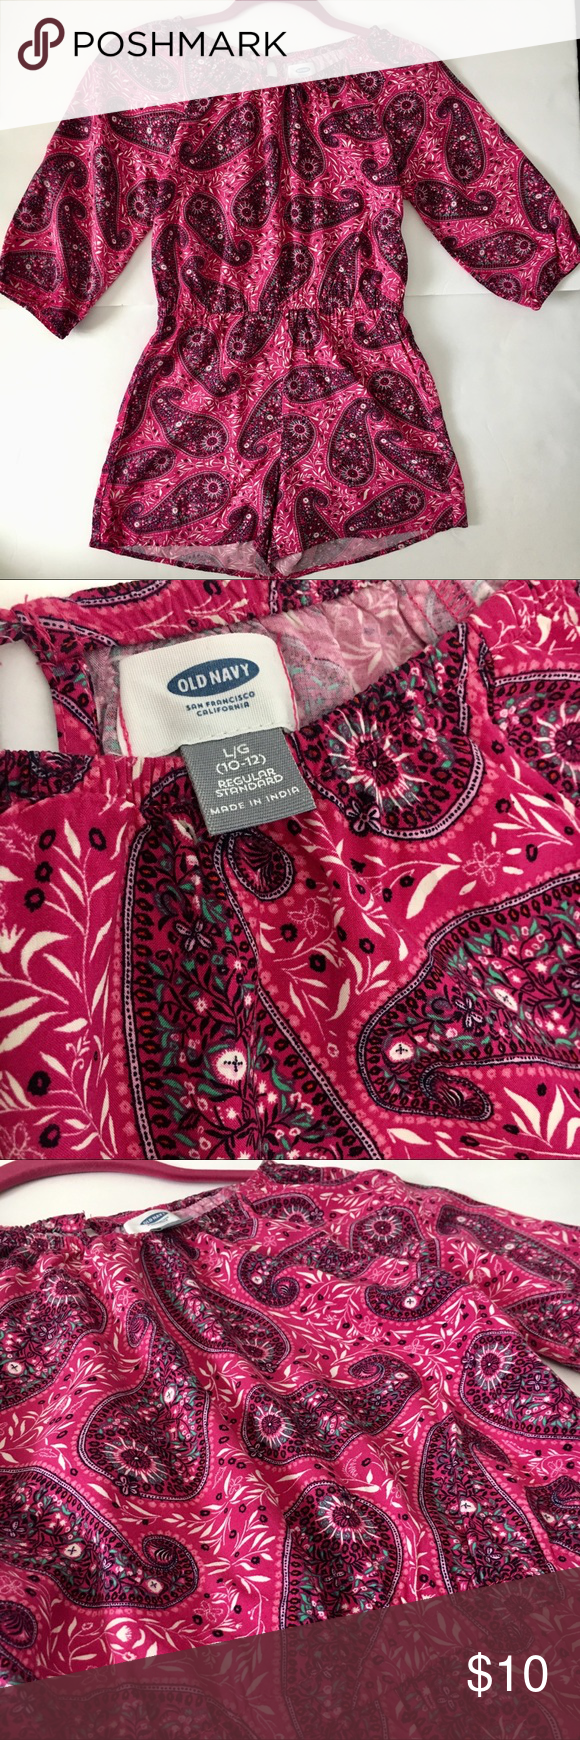 be3929b961 OLD NAVY girl s romper. Perfect for Summer! Beautiful Pink Paisley print.  3 4 sleeve. 100% Rayon Viscose. Preloved with no rips stains.